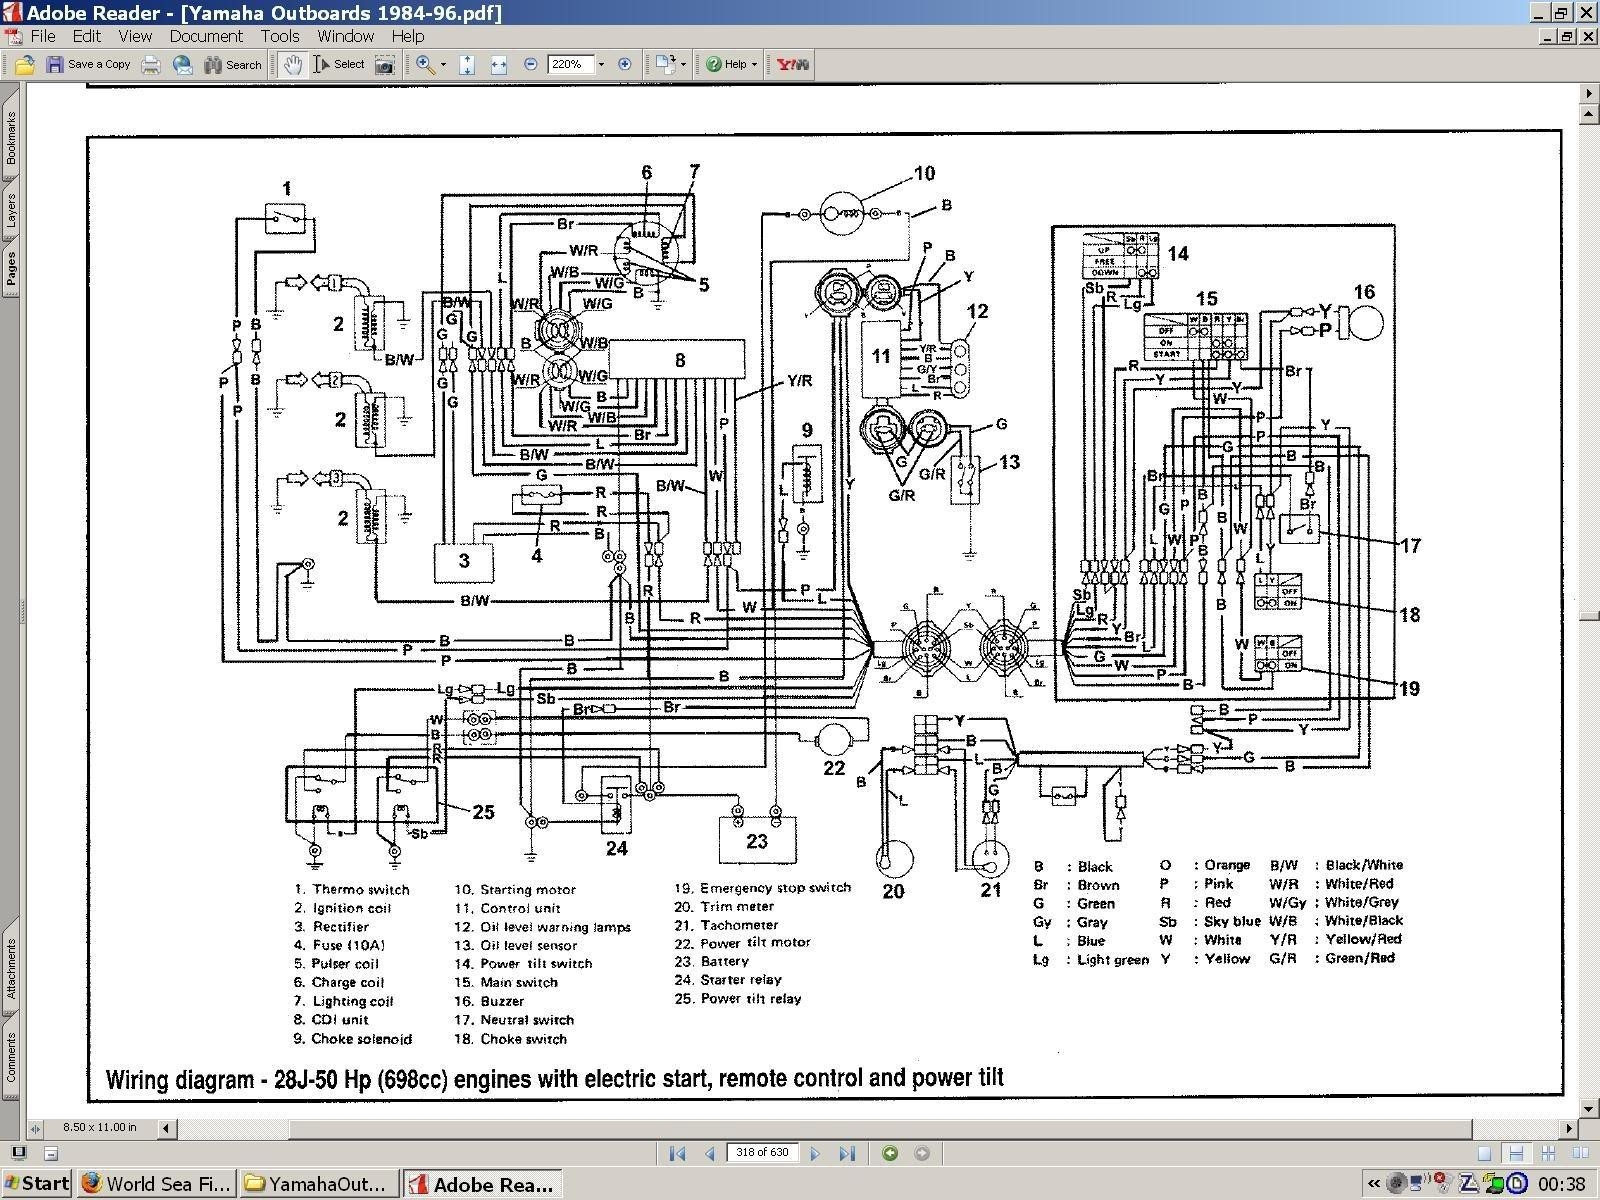 2008 Yamaha Outboard Wiring - Schematics Online on yamaha schematics, yamaha motor diagram, suzuki quadrunner 160 parts diagram, yamaha ignition diagram, yamaha steering diagram, yamaha wiring code, yamaha solenoid diagram,